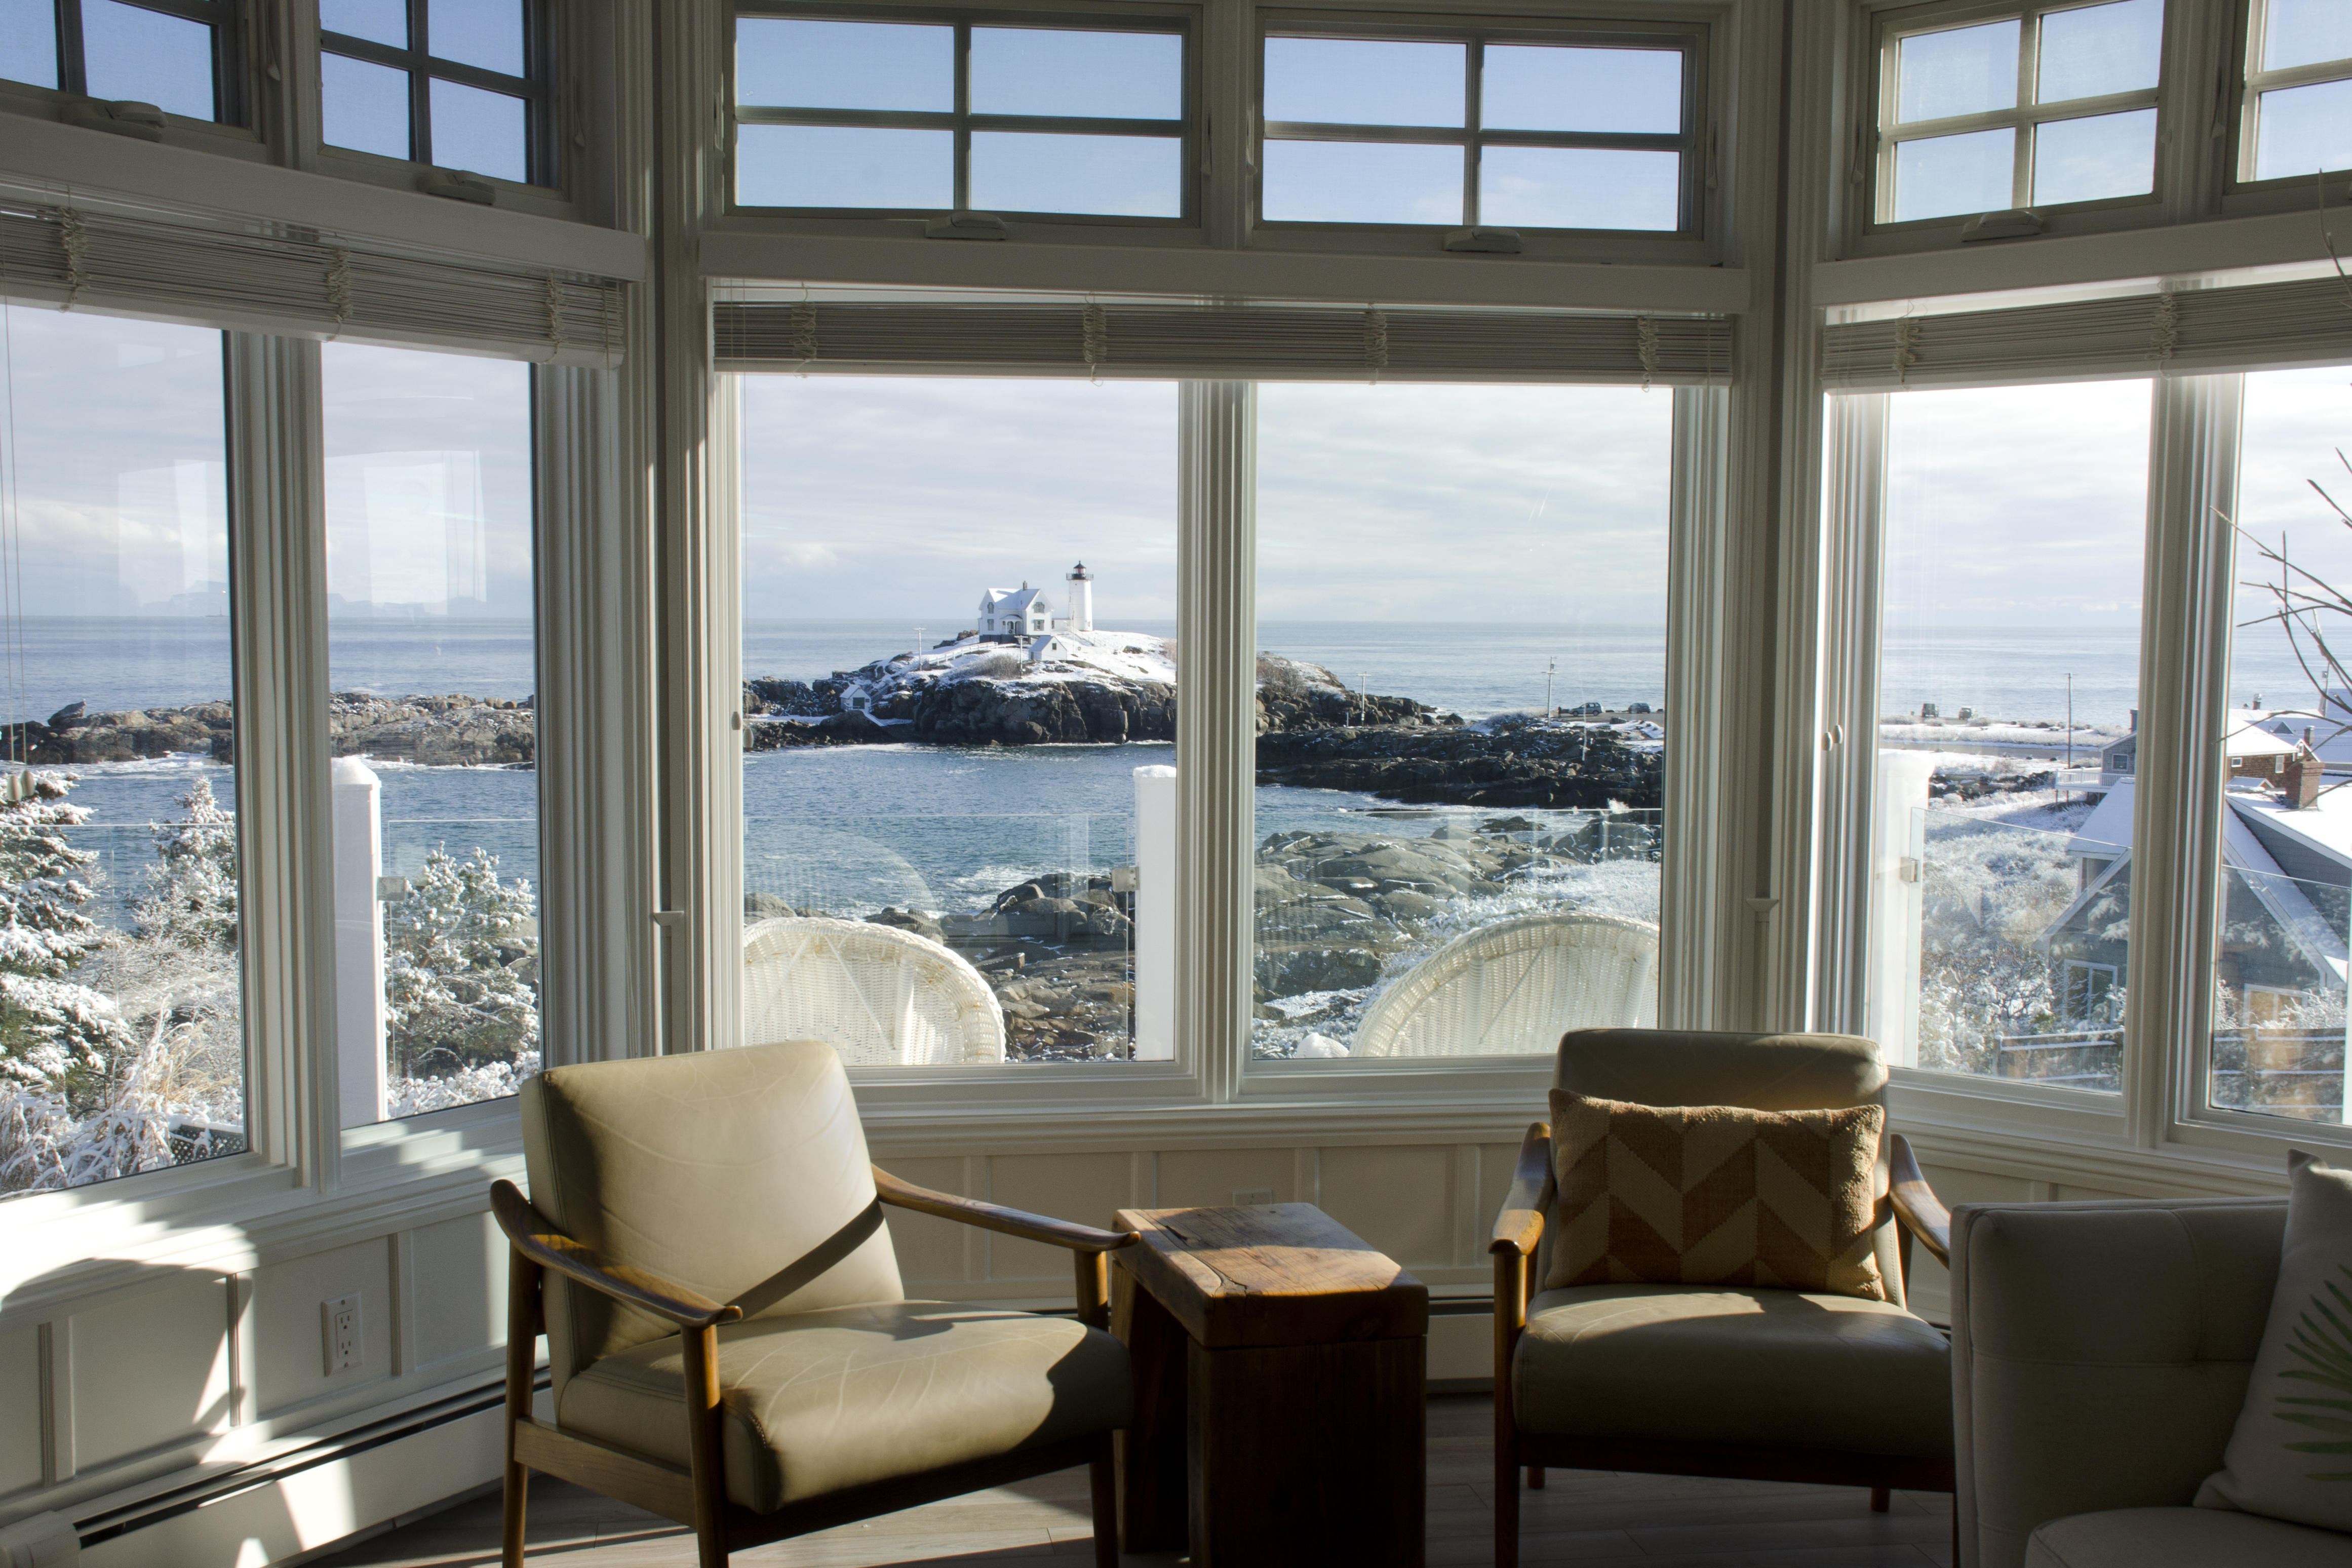 Middle Townhouse Suite, Nubble Lighthouse View at The ViewPoint Hotel